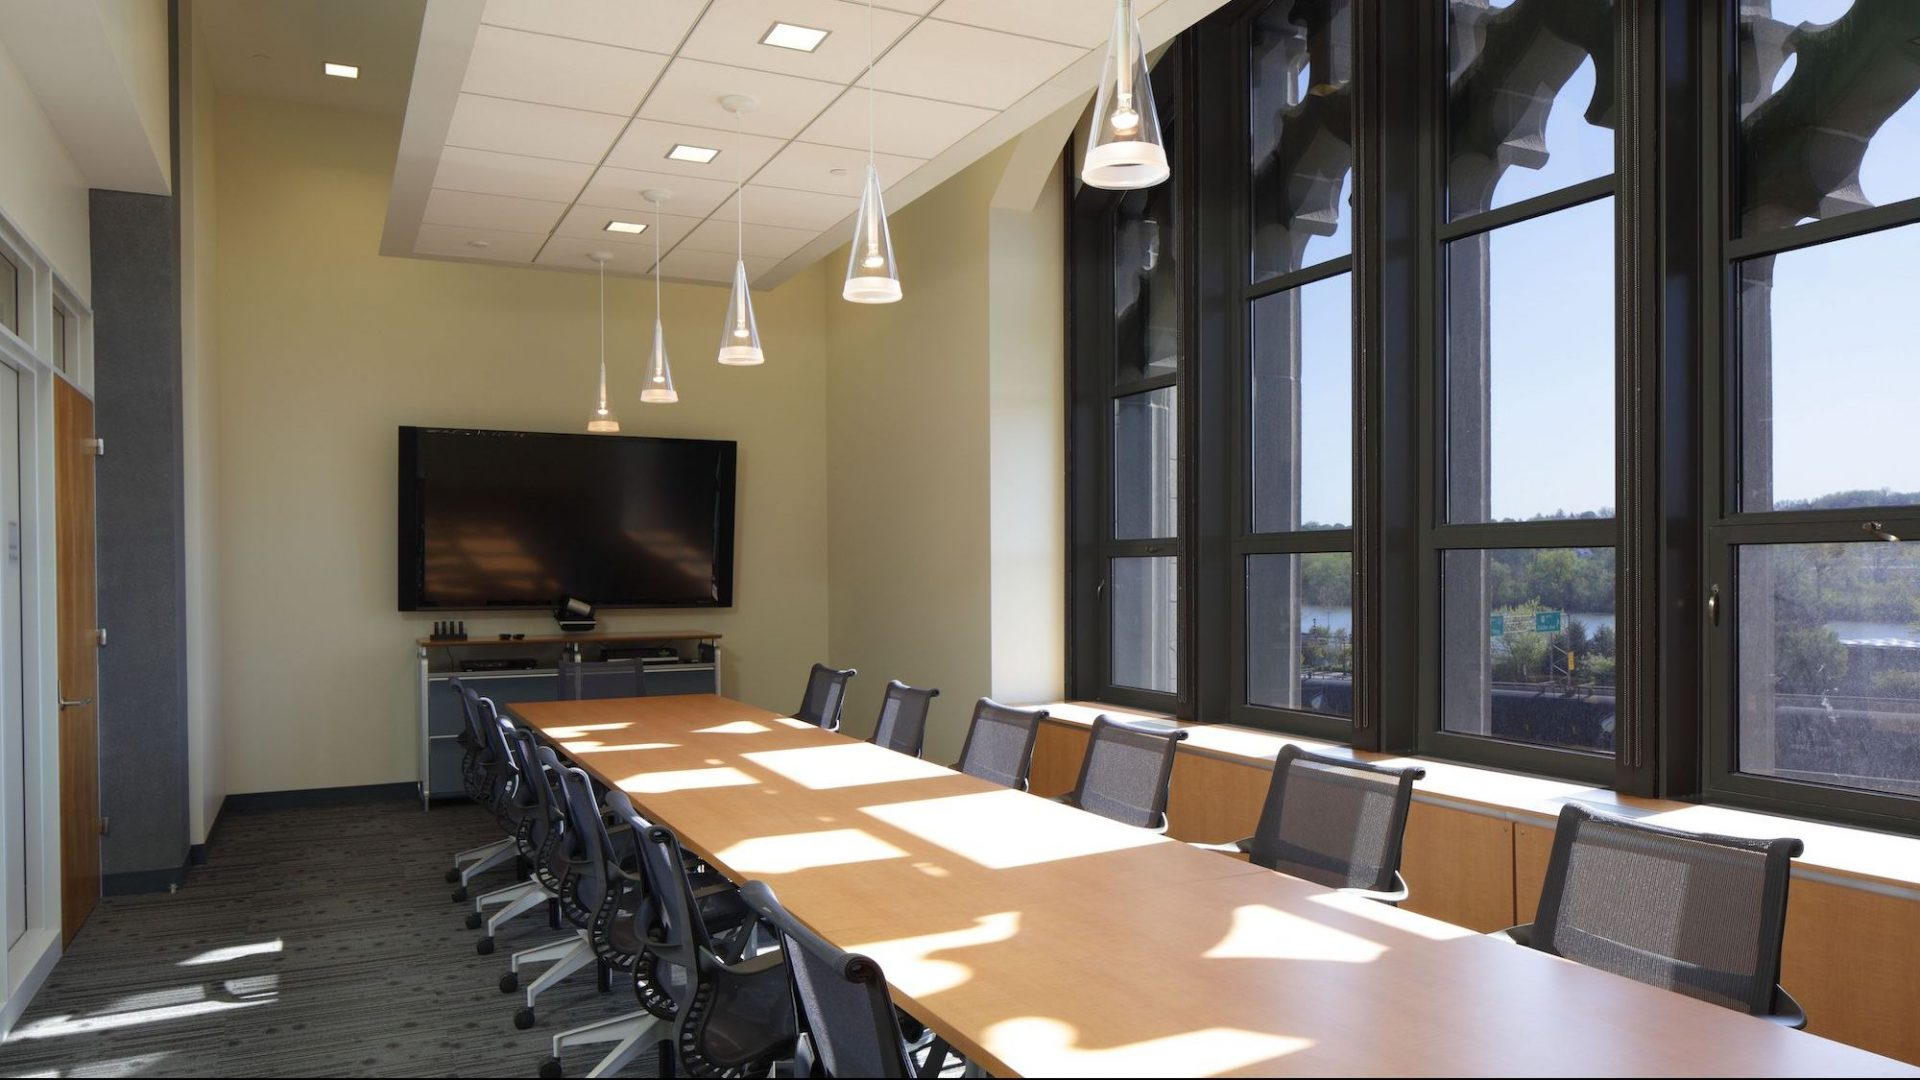 SUNY Plaza building conference room